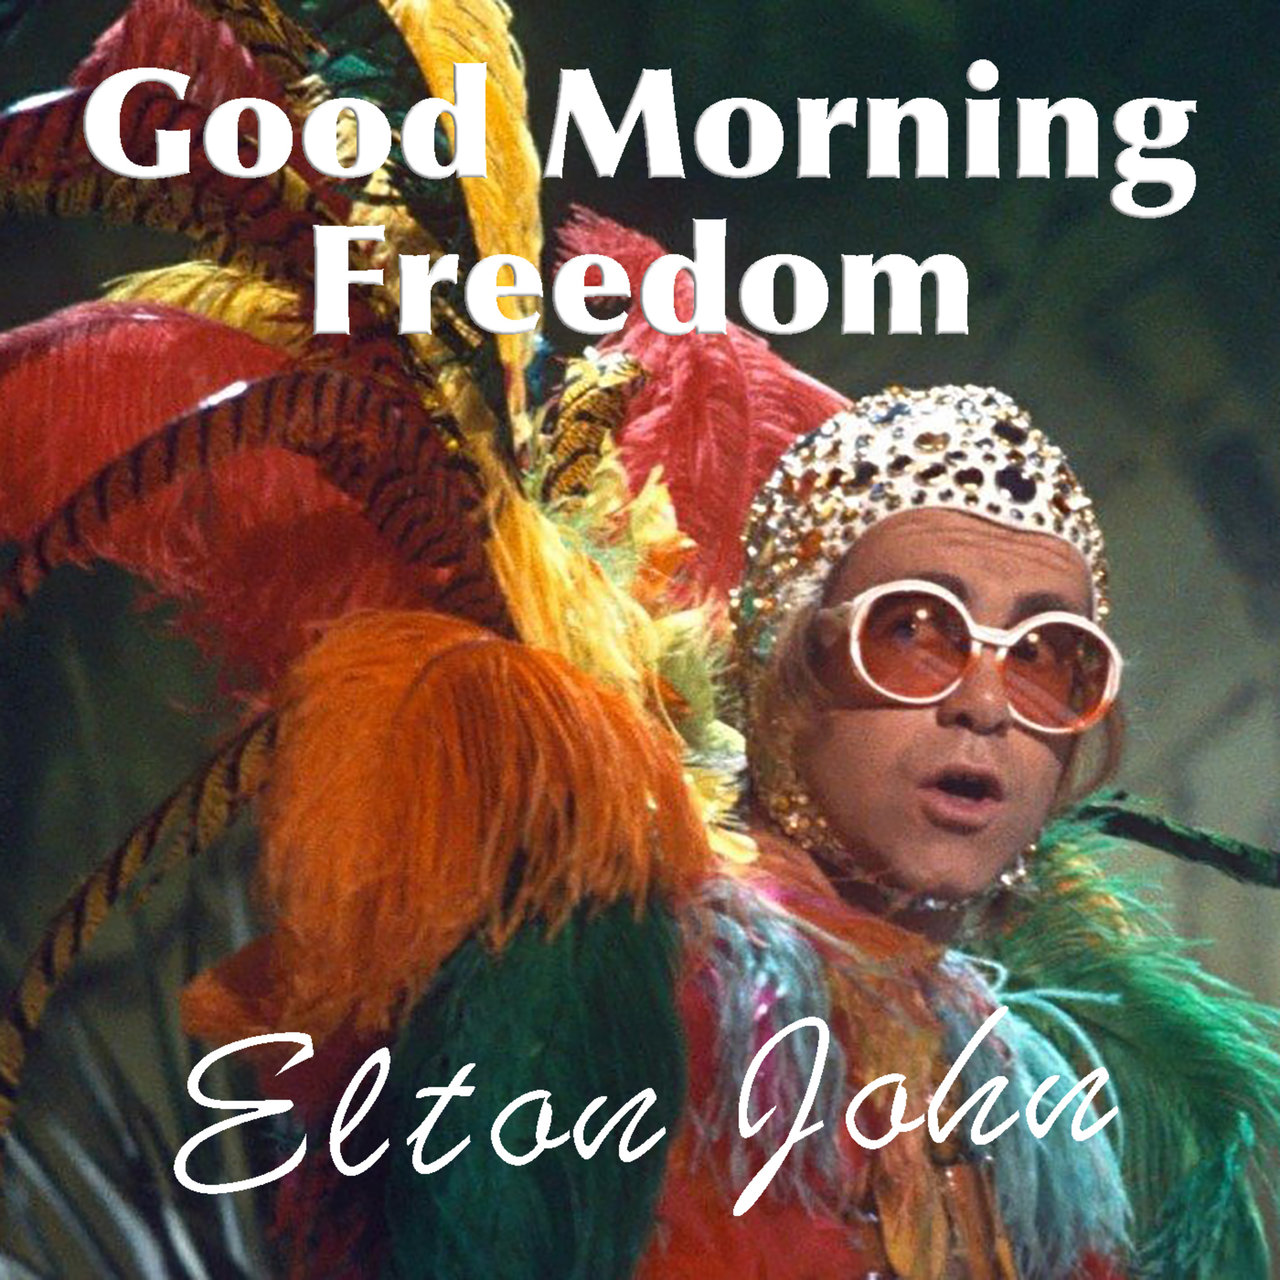 Good Morning Freedom